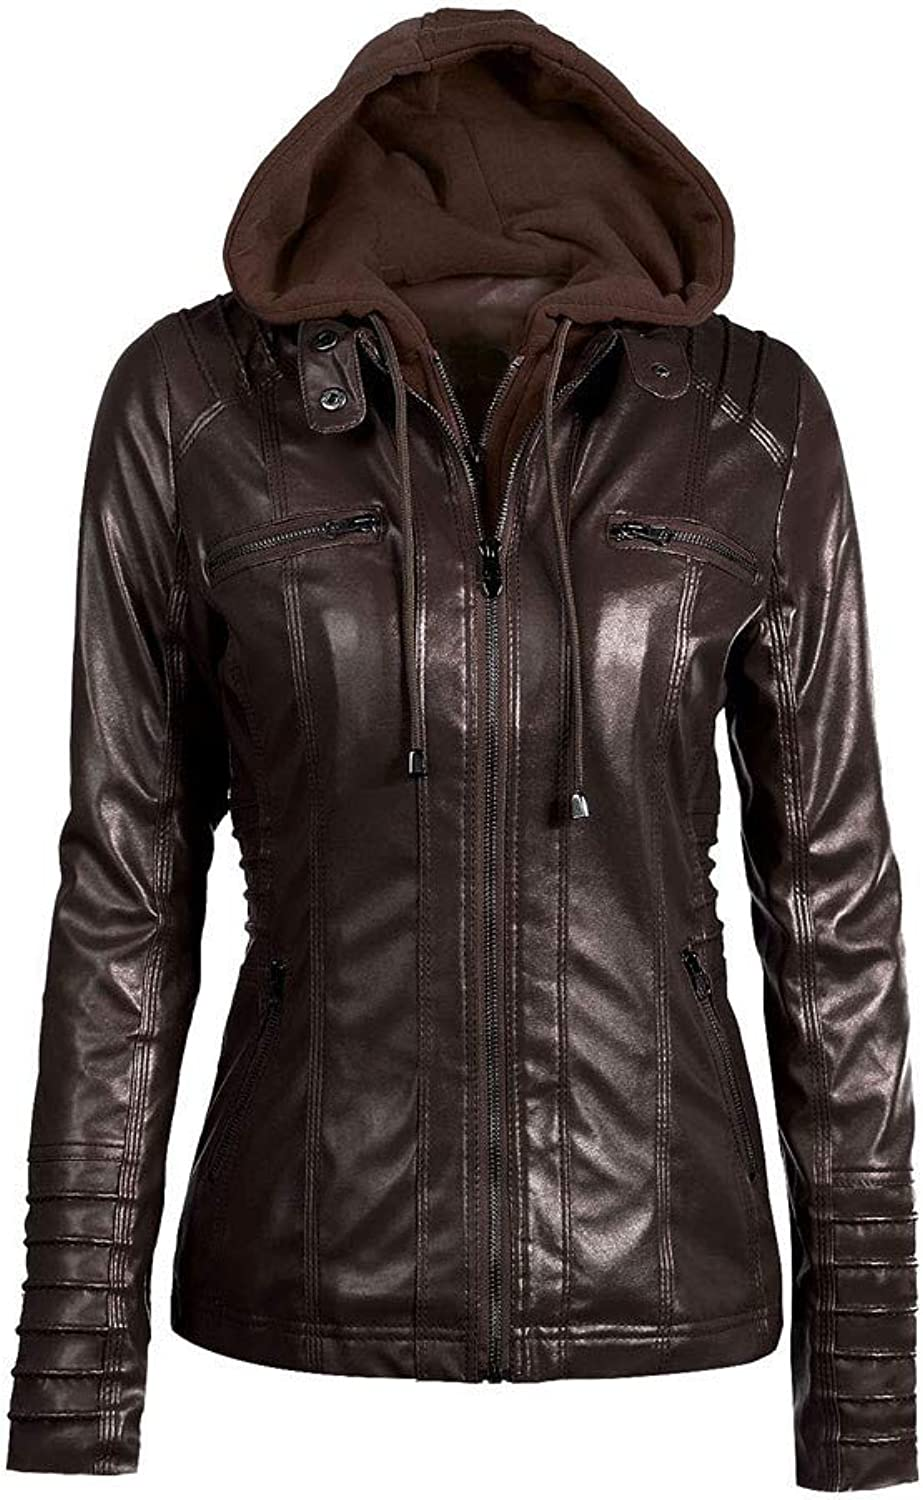 Liraly Womens Coats and Jackets Slim Hooded Jacket Overcoat Coat Lapel Removable Zipper Outwear Tops